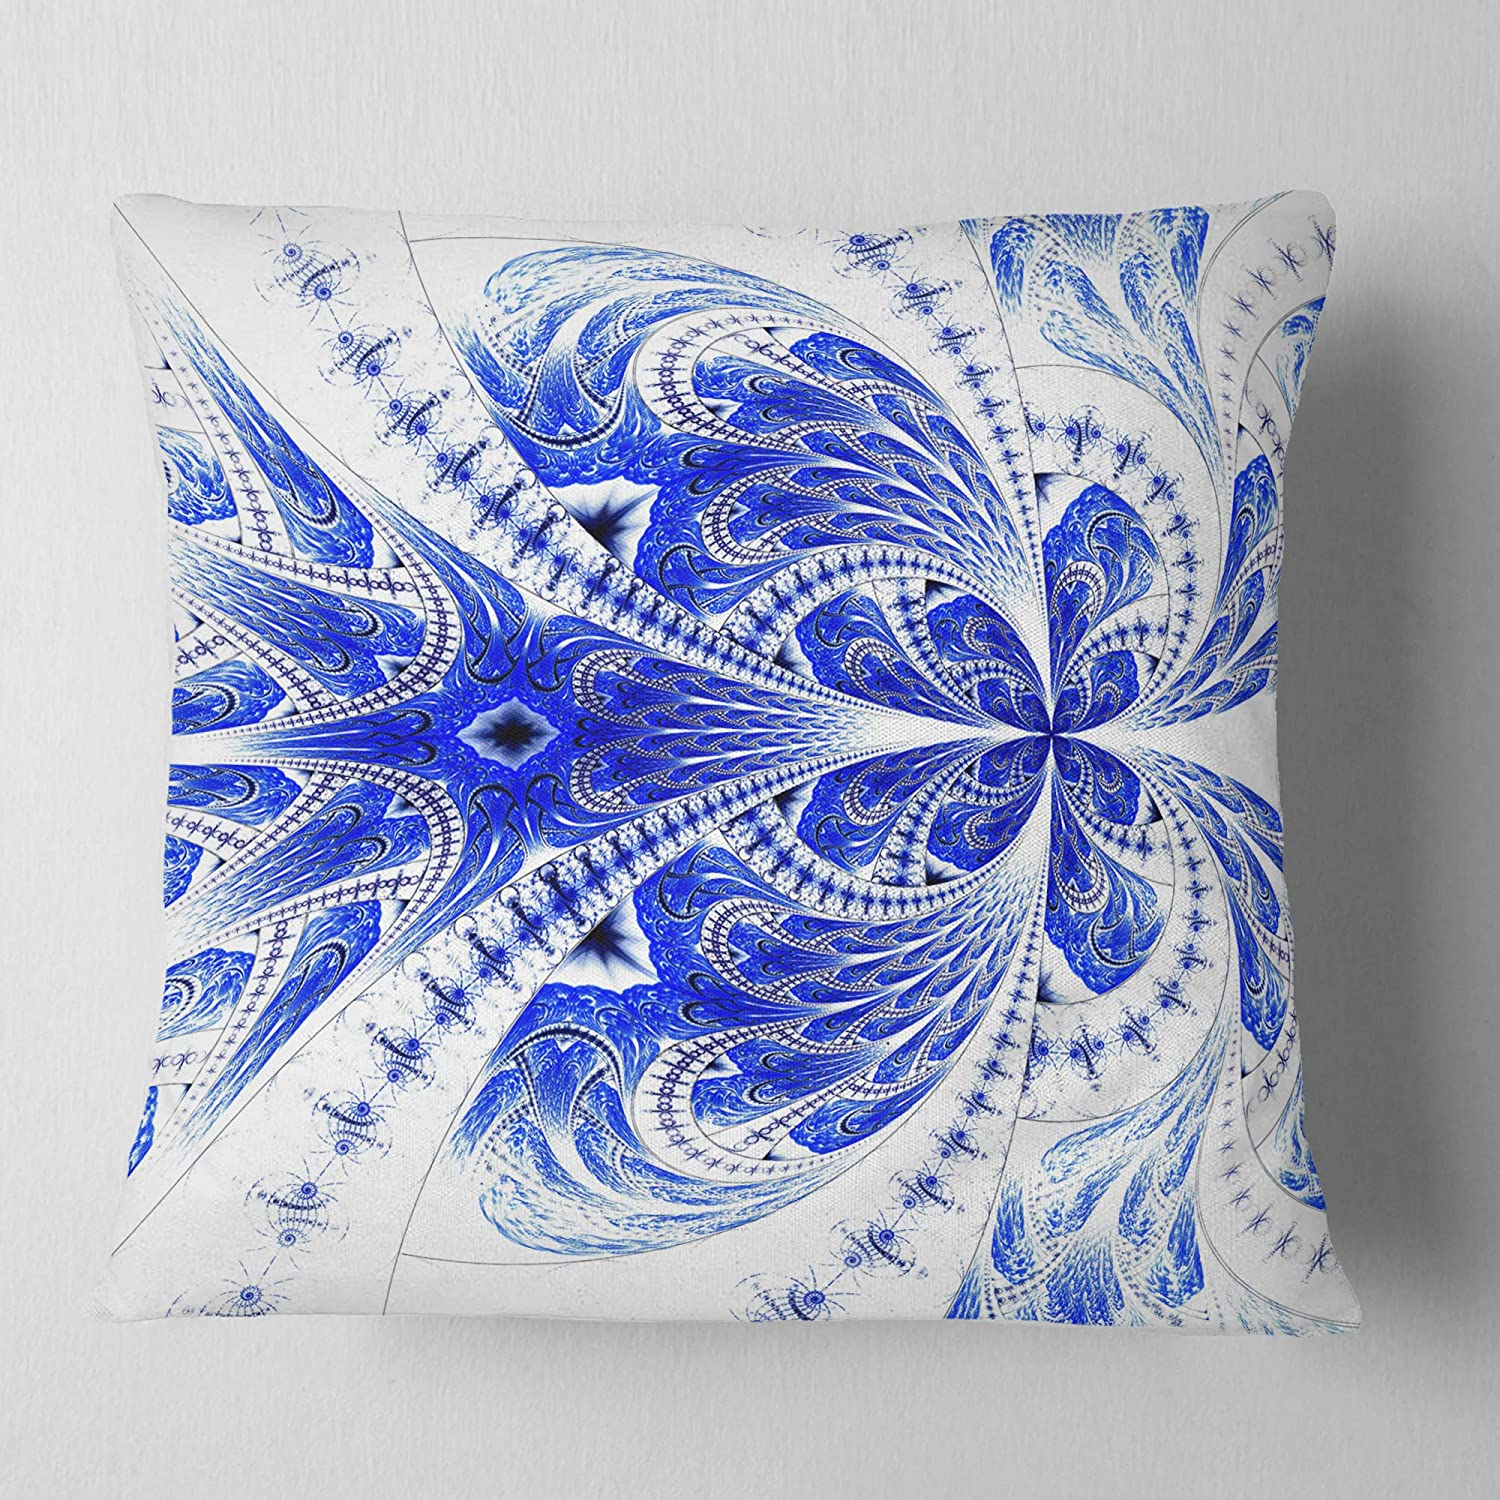 Amazon Com Designart Symmetrical Soft Blue Fractal Flower Floral Throw Living Room Sofa Pillow Insert Cushion Cover Printed On Both Side 26 In X 26 In Arts Crafts Sewing